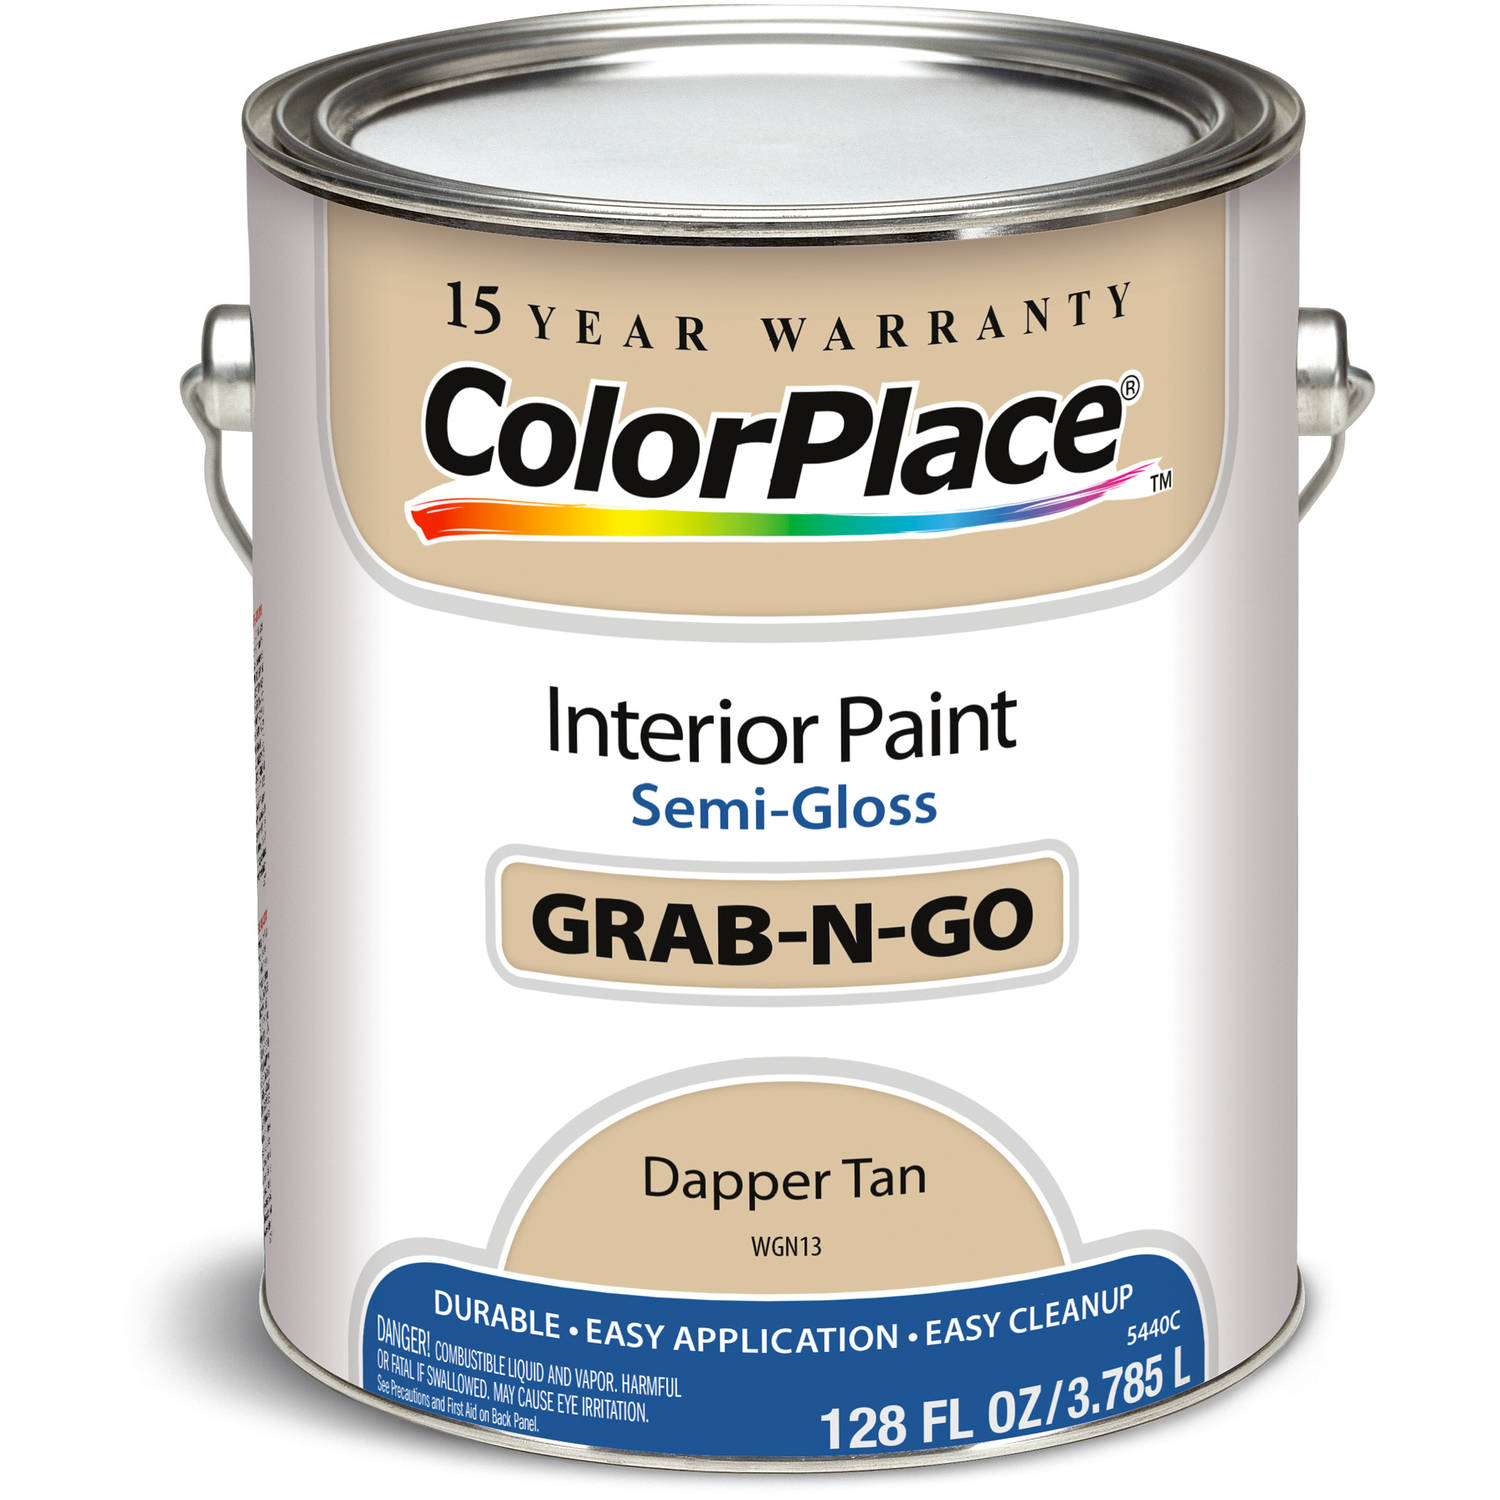 Colorplace Dapper Tan Semi Gloss Interior Paint, 1-Gallon